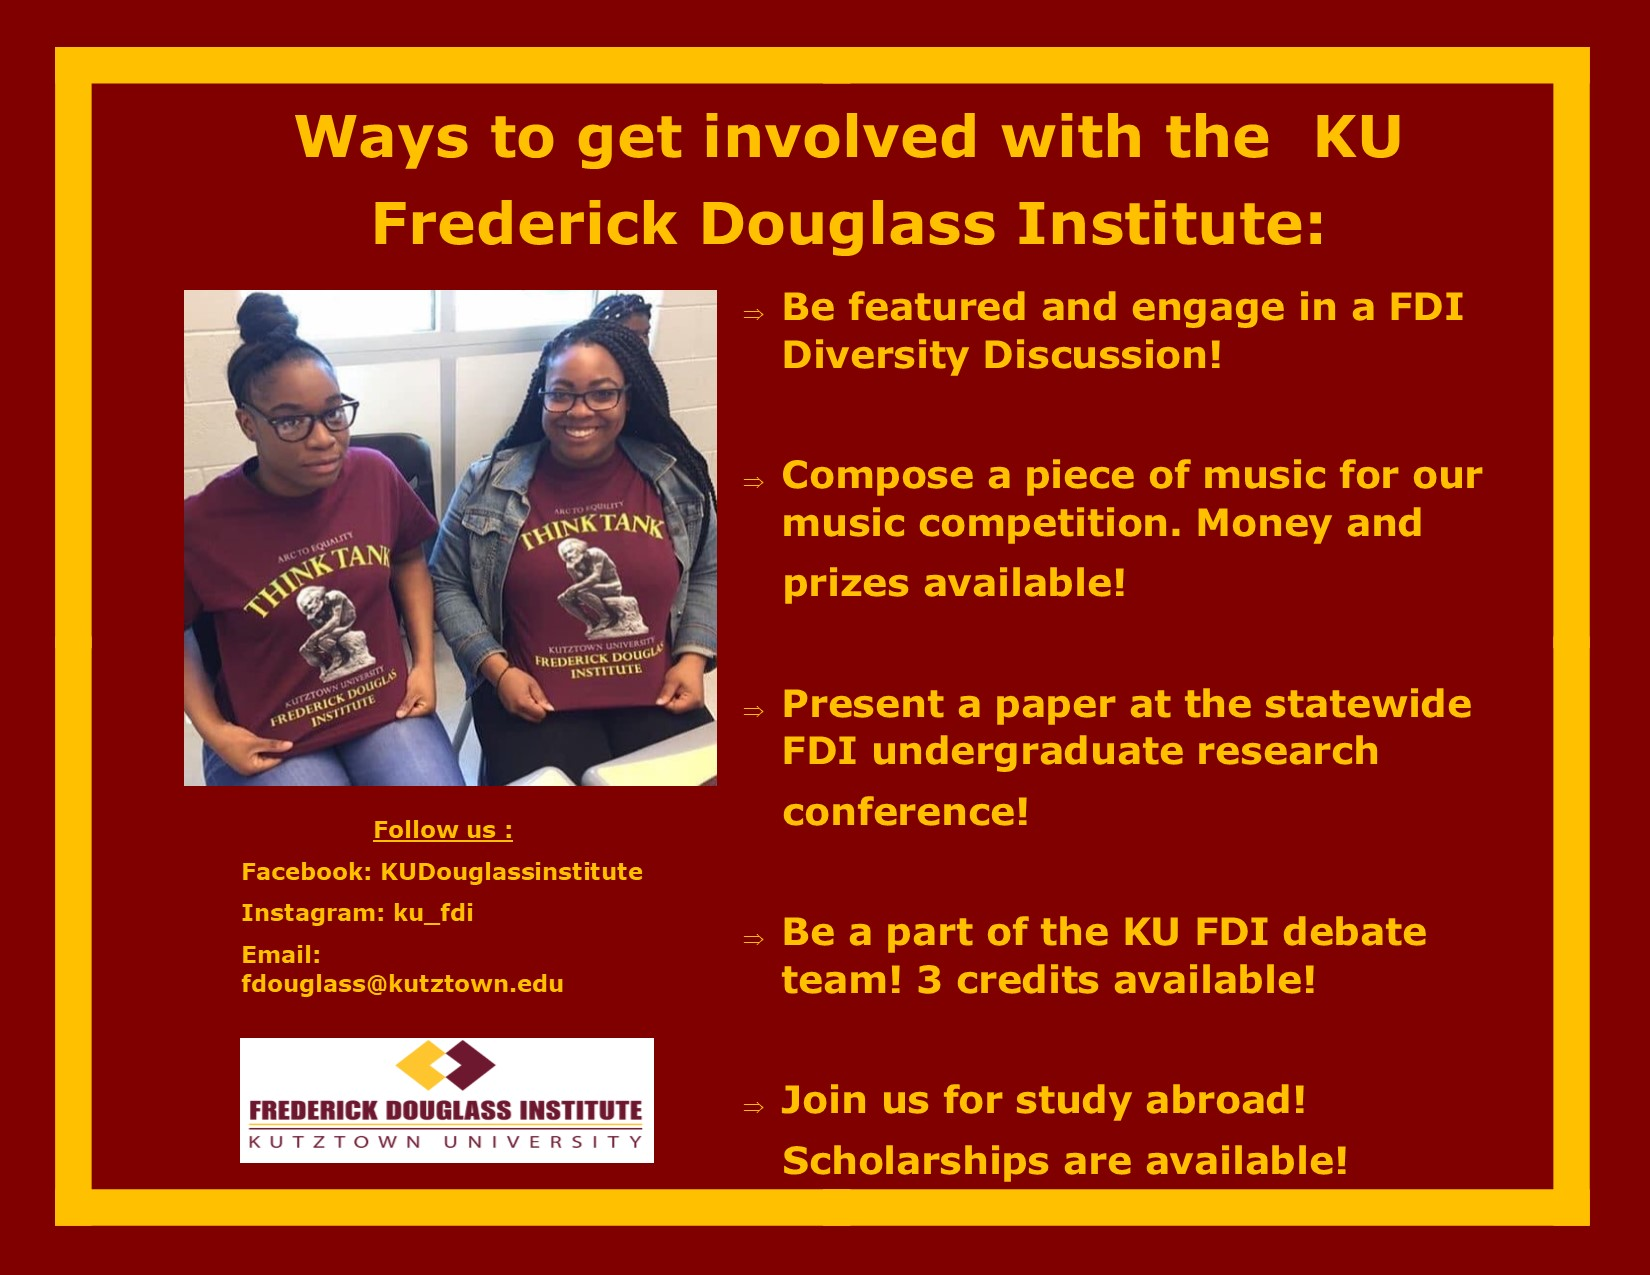 Get involved with the KU Frederick Douglass Institute